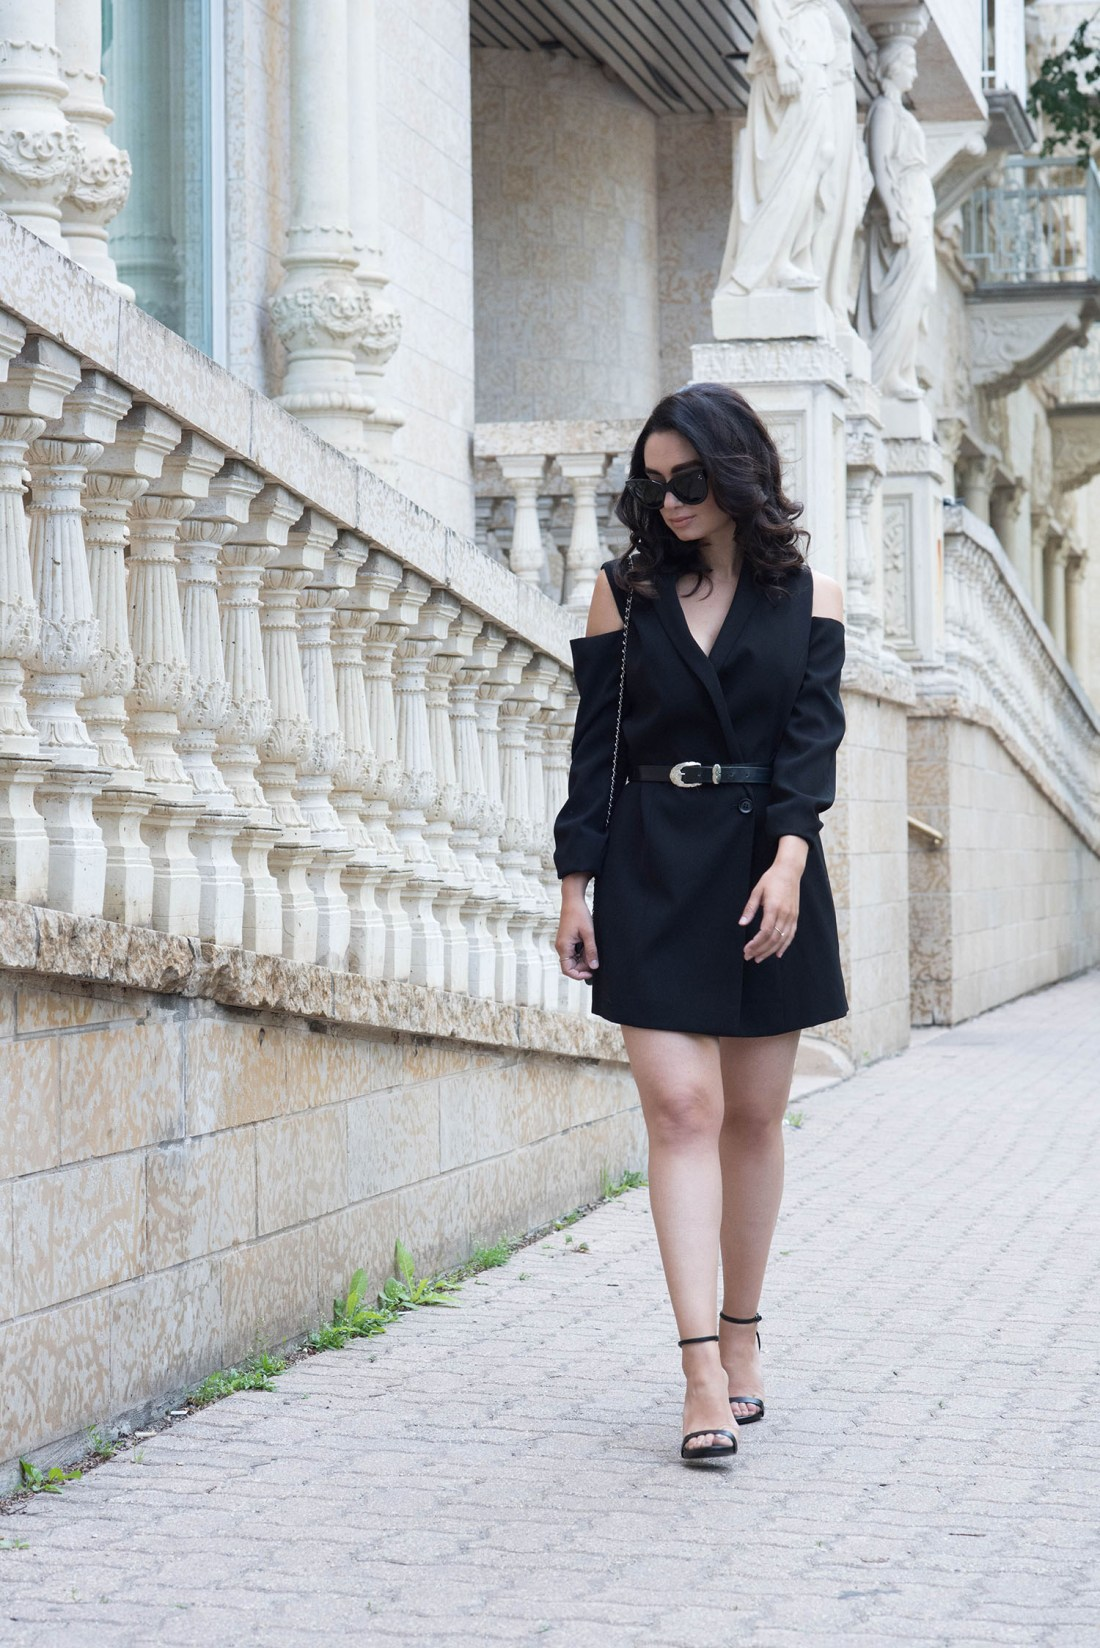 Fashion blogger Cee Fardoe of Coco & Vera walks past Fort Garry Place in Winnipeg wearing an Ever New dress, Steve Madden sandals and vintage belt